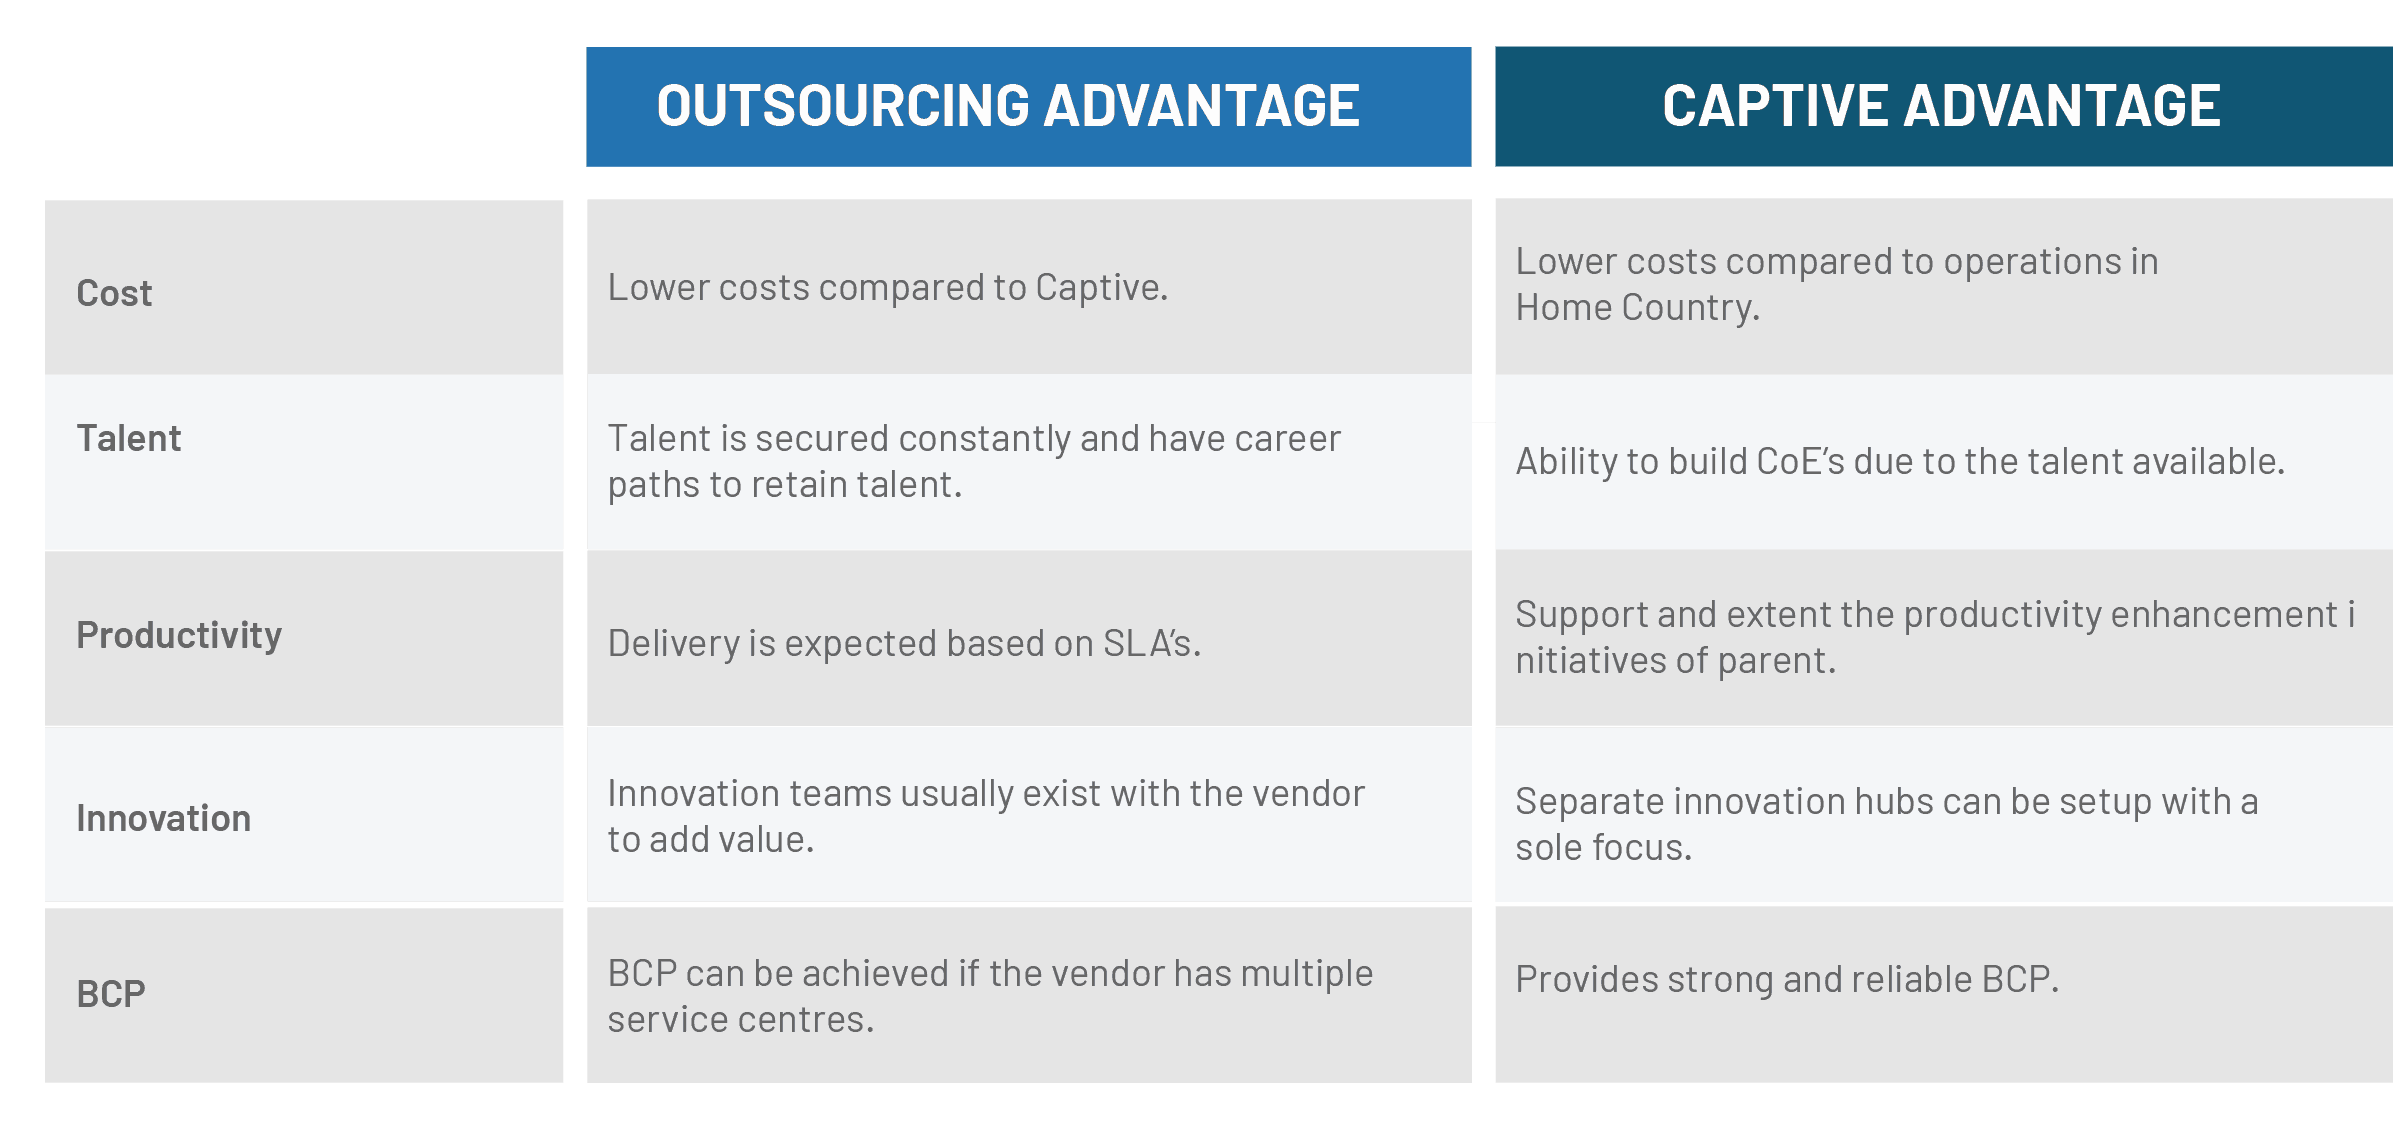 Advantages of captive offshoring - Valenta BPO Australia